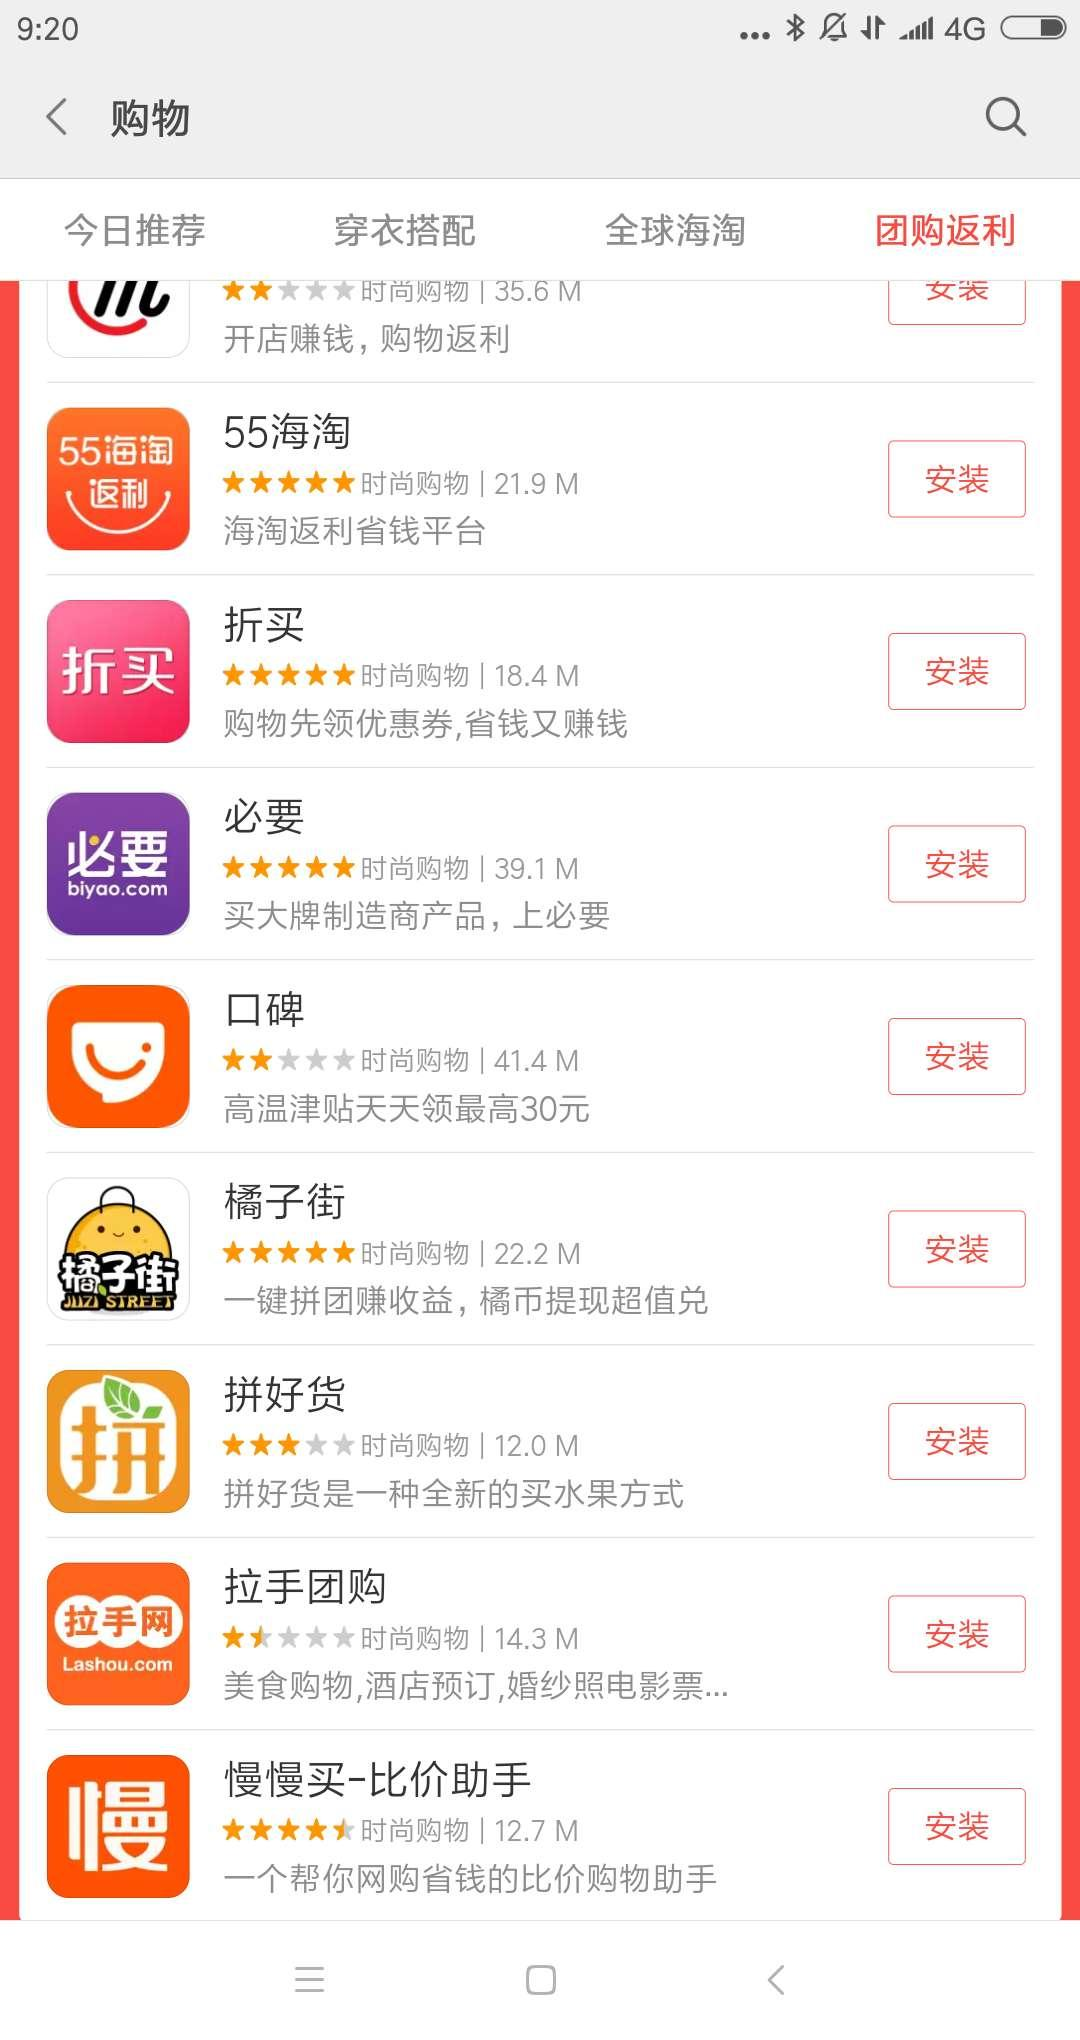 Pinduoduo Another Chinese E Commerce Firm To Bite The Dust